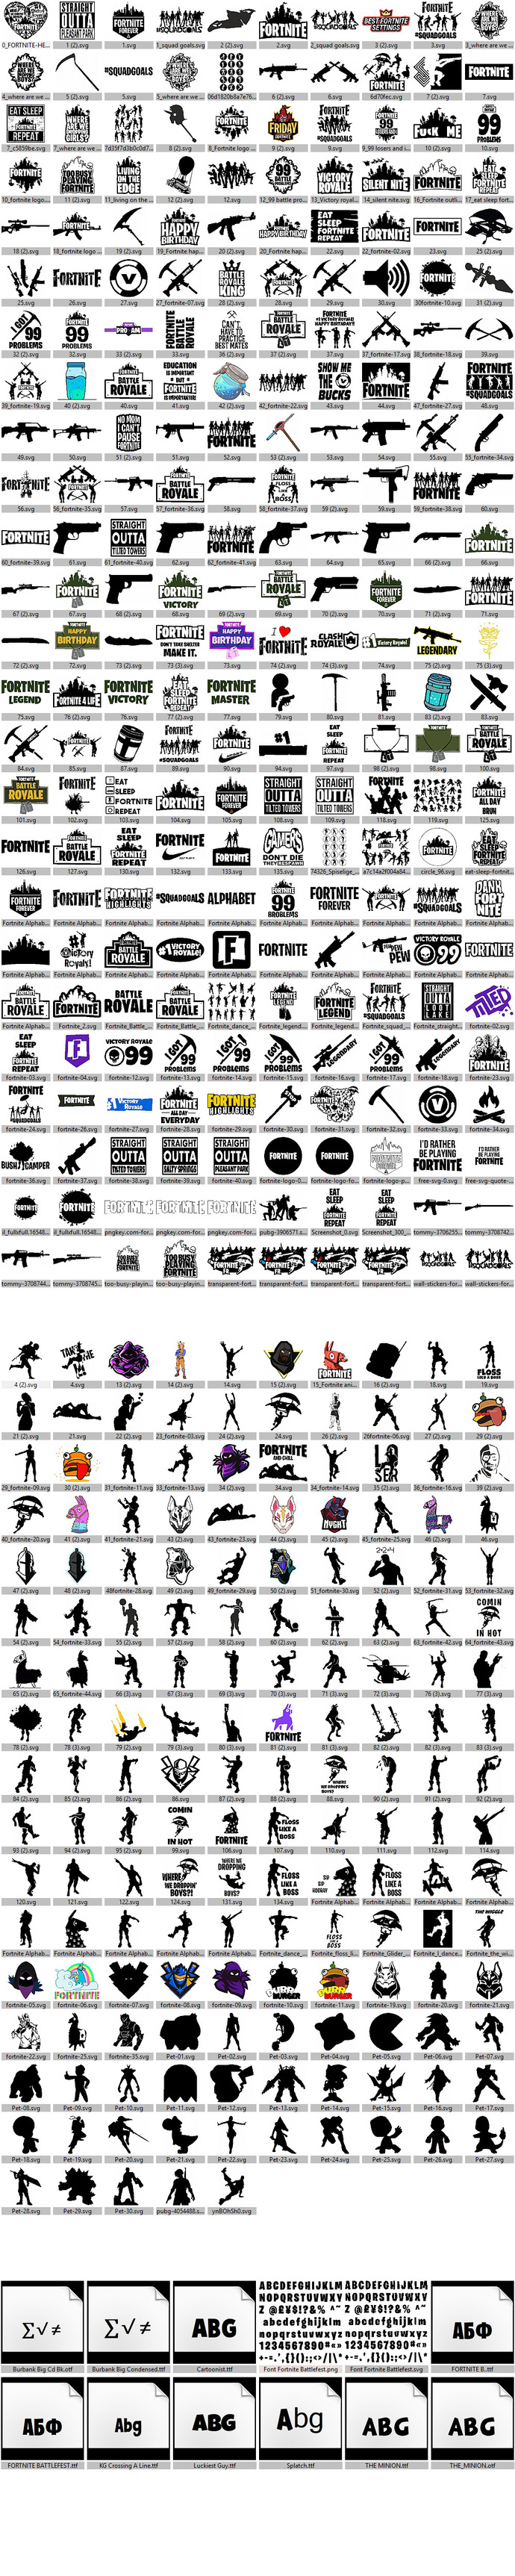 Fortnite Files SVG and PNG Files: Quotes, Fonts, Logos, Heroes